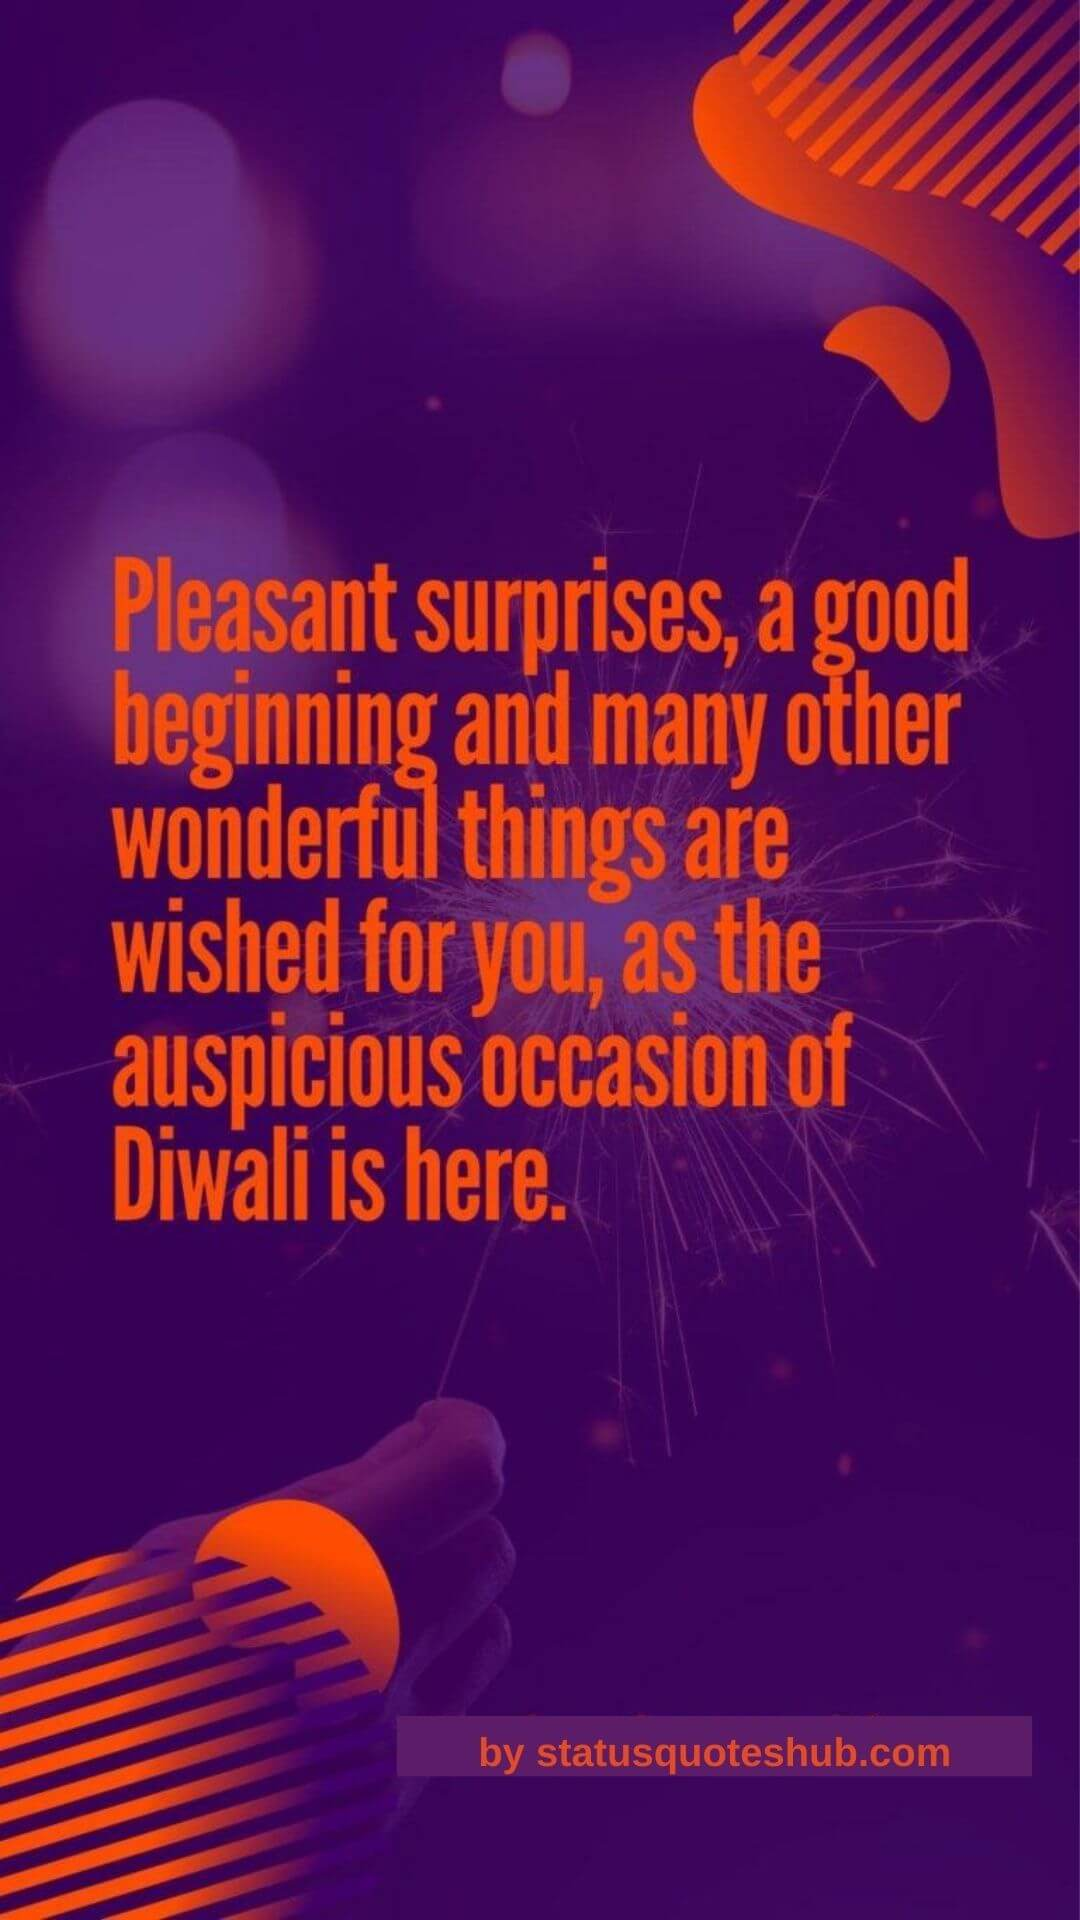 Diwali whatsapp status and quotes